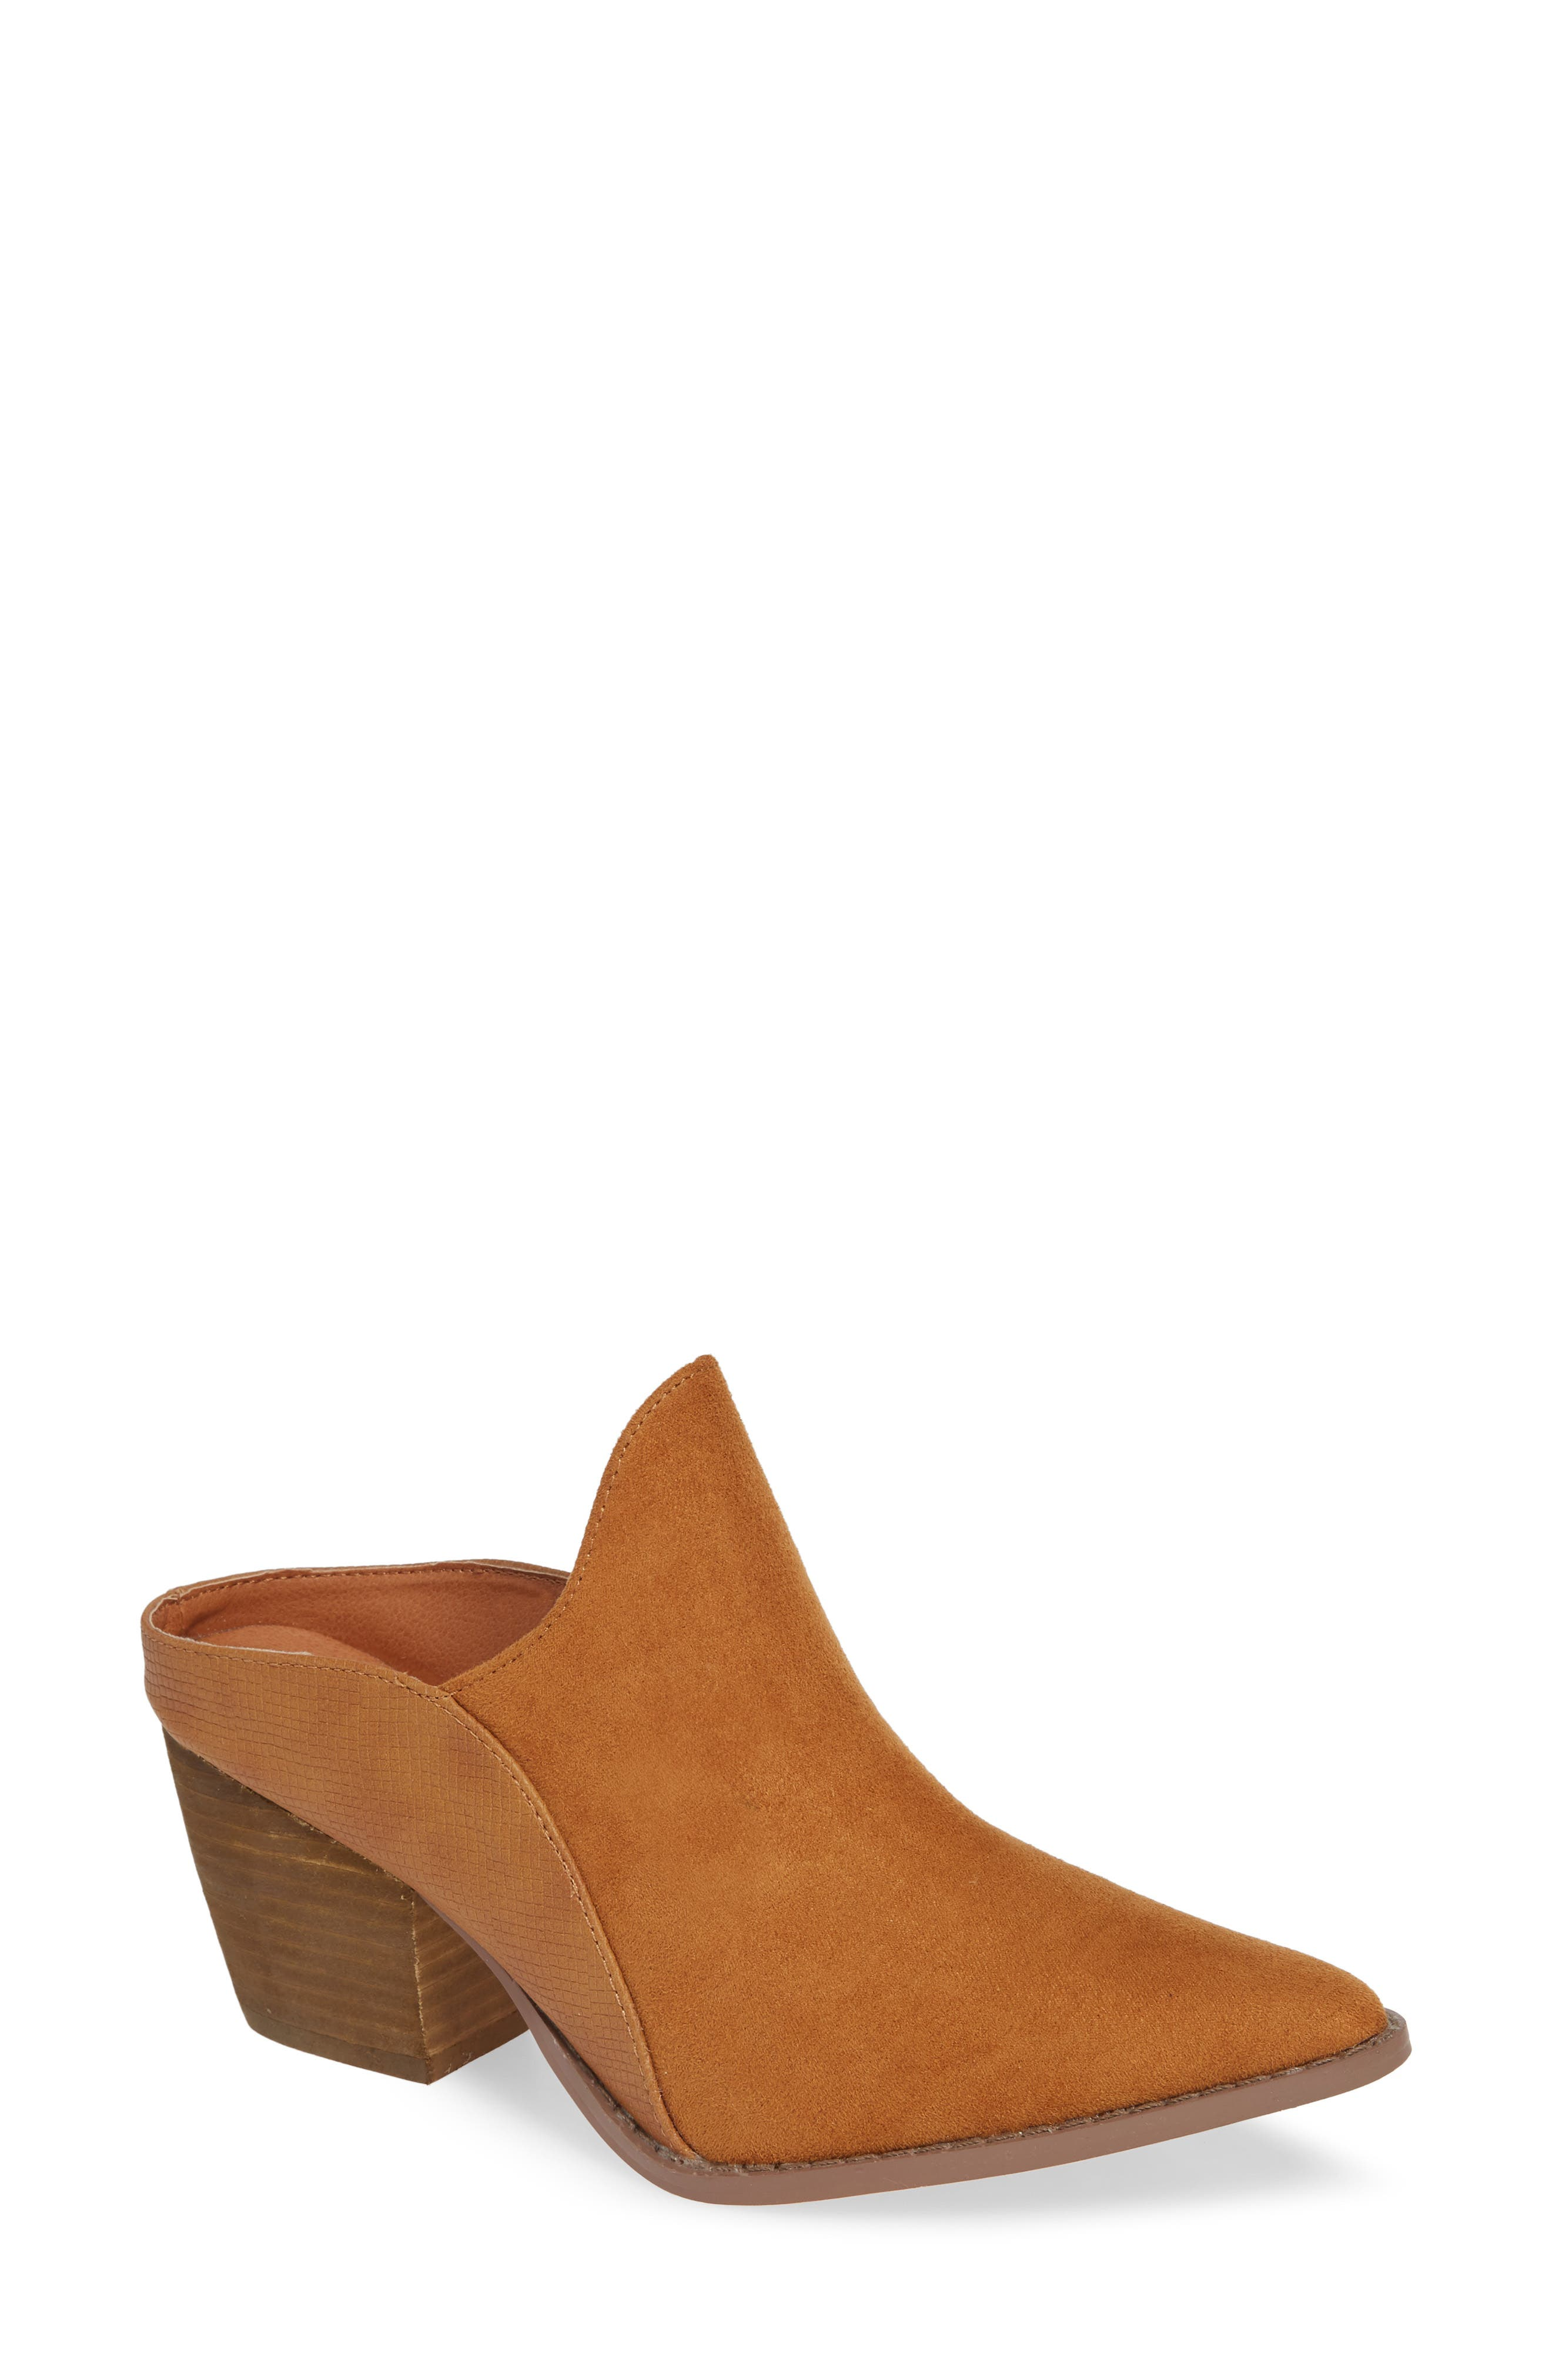 COCONUTS BY MATISSE Leave it Mule, Main, color, TAN